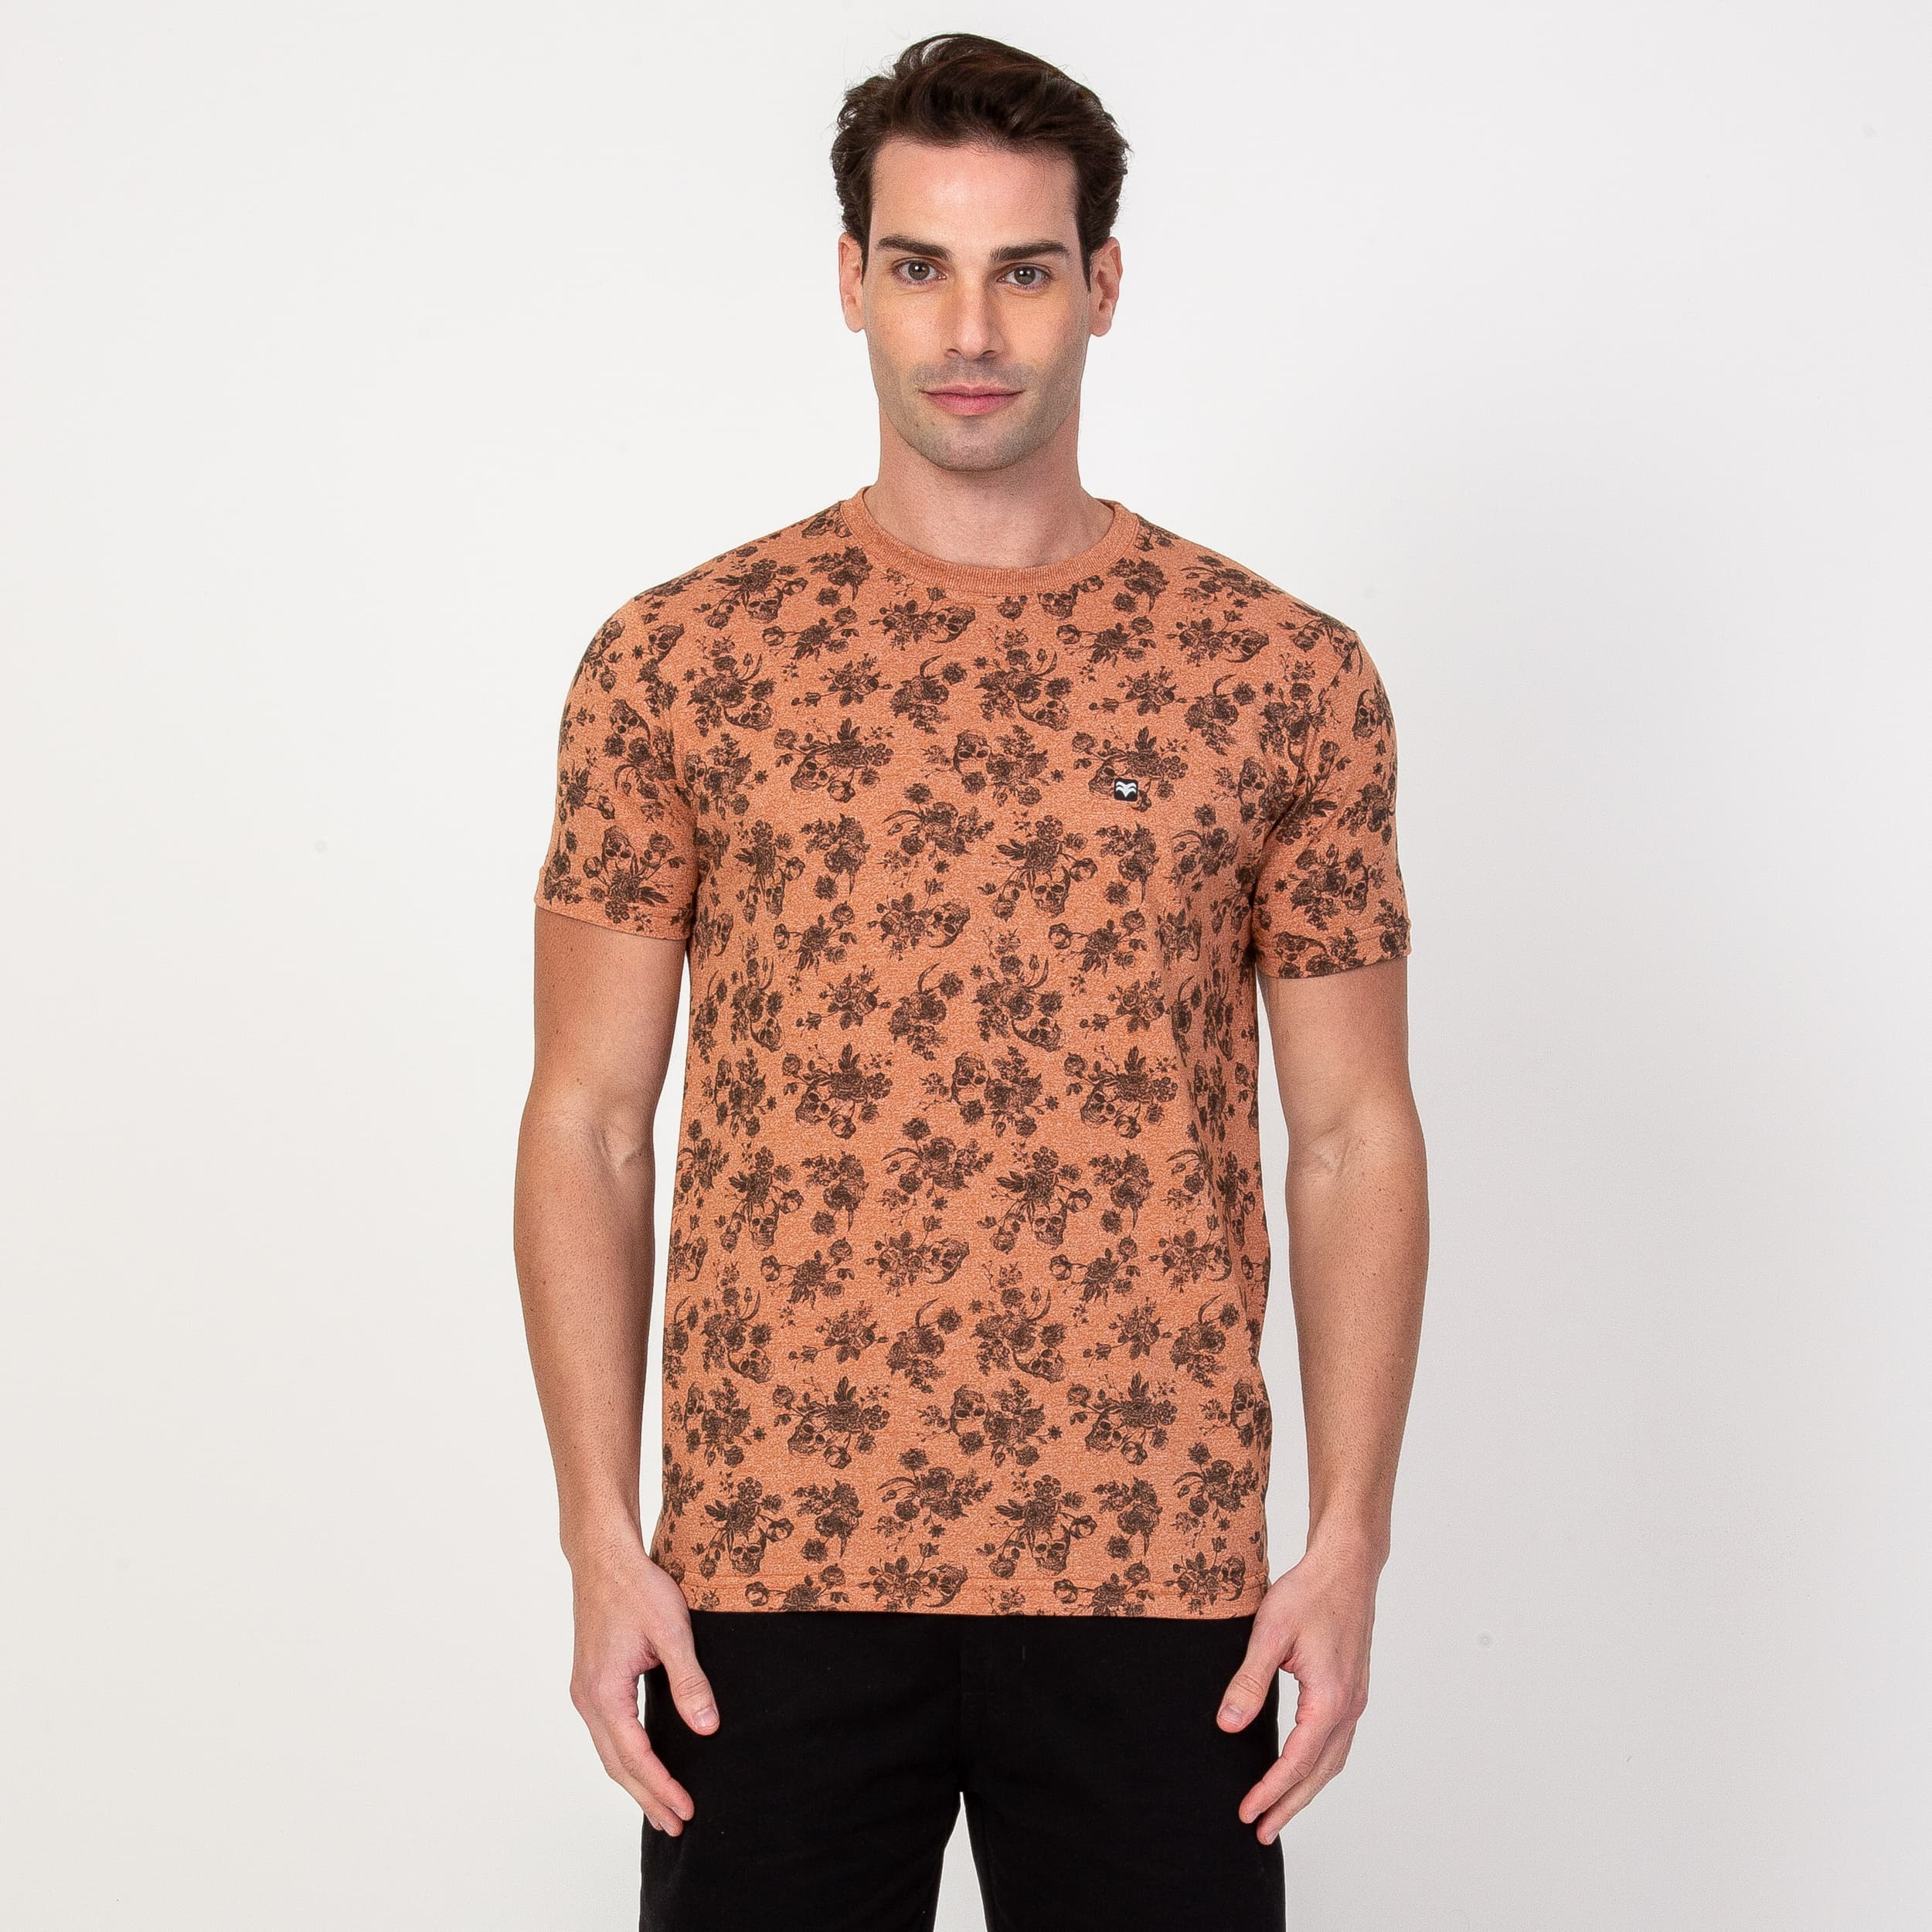 T-shirt Skulls and Flowers